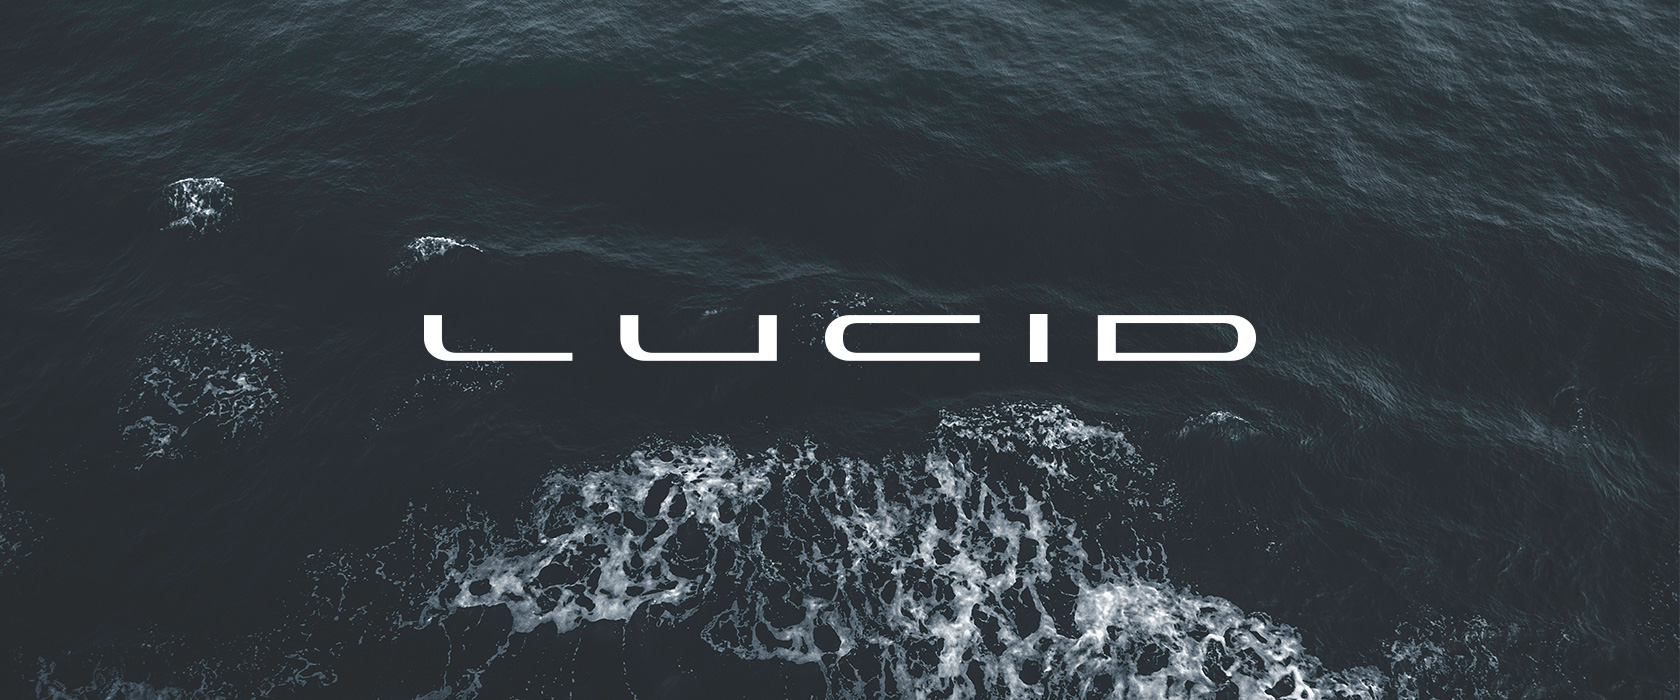 Lucid Motors Appoints Peter Rawlinson as CEO.